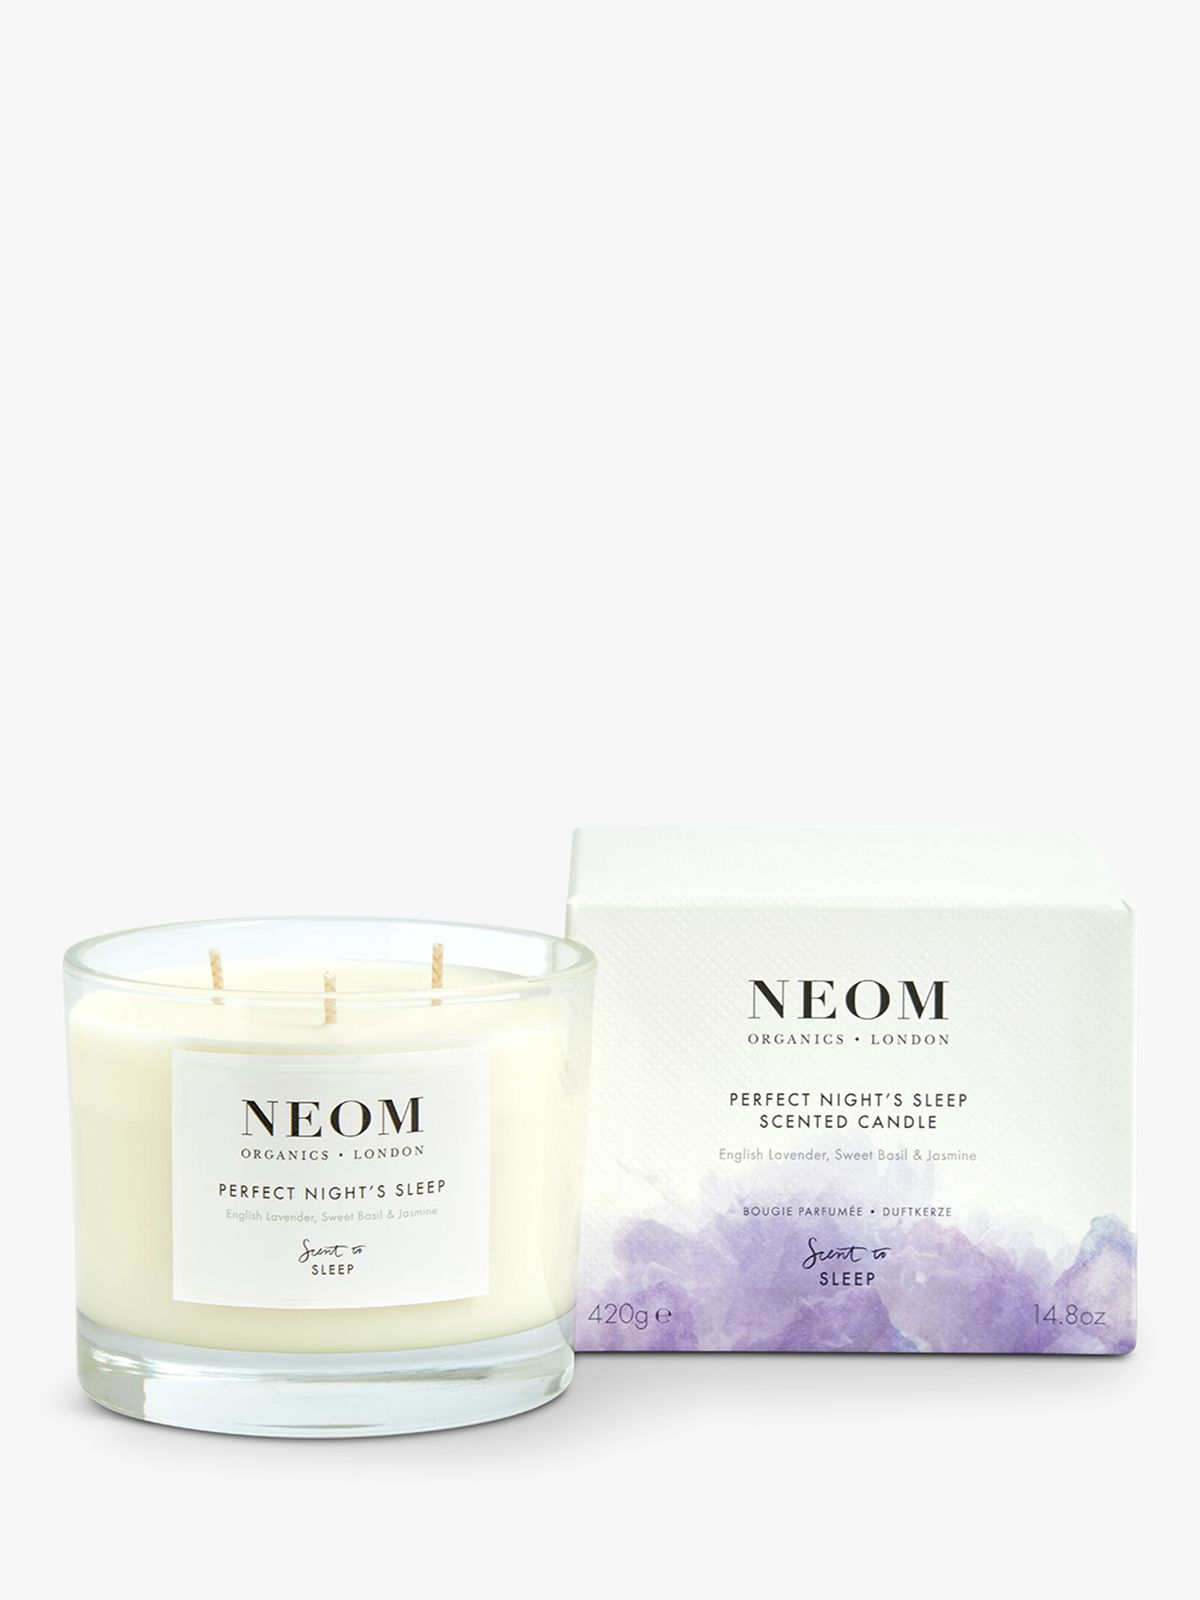 Neom Neom Tranquility 3 Wick Candle, 420g